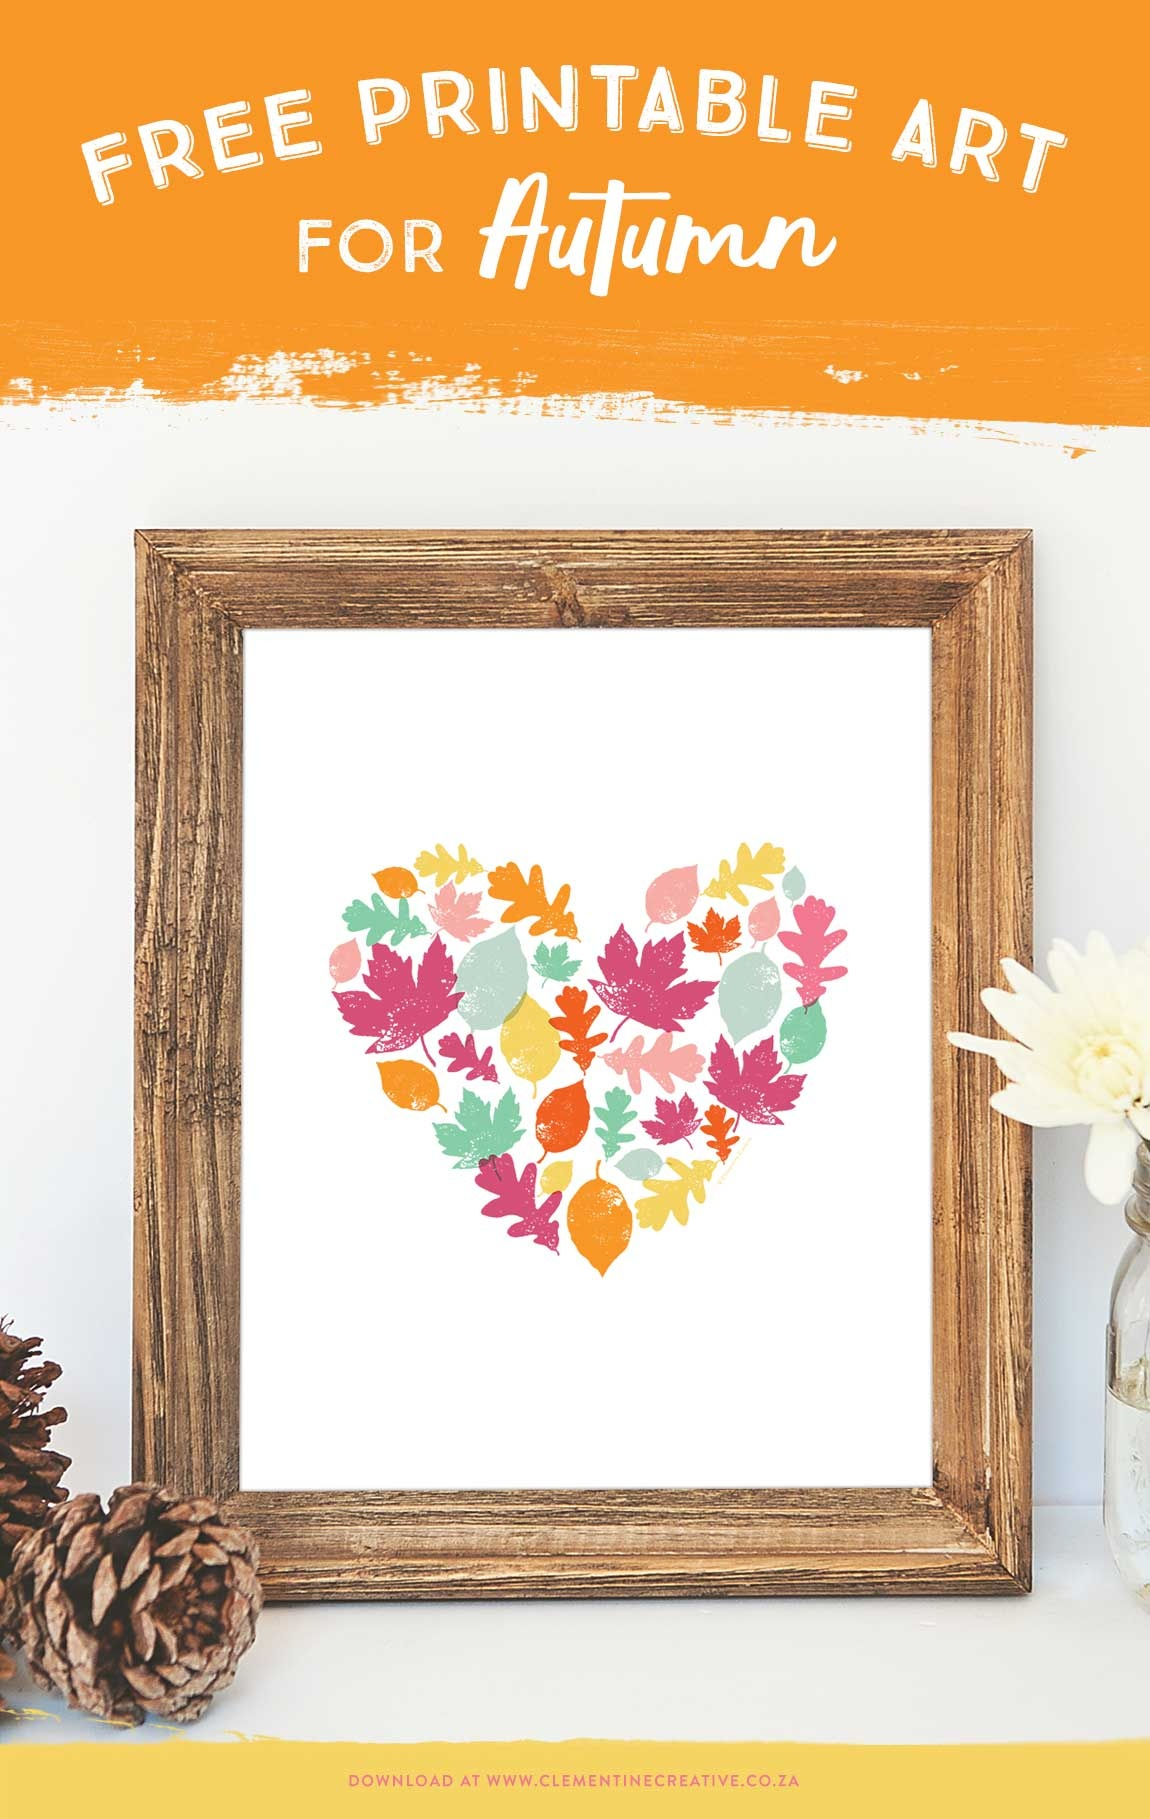 Autumn Leaves Art Print - Free Printable Art For Your Home - Free Printable Artwork To Frame